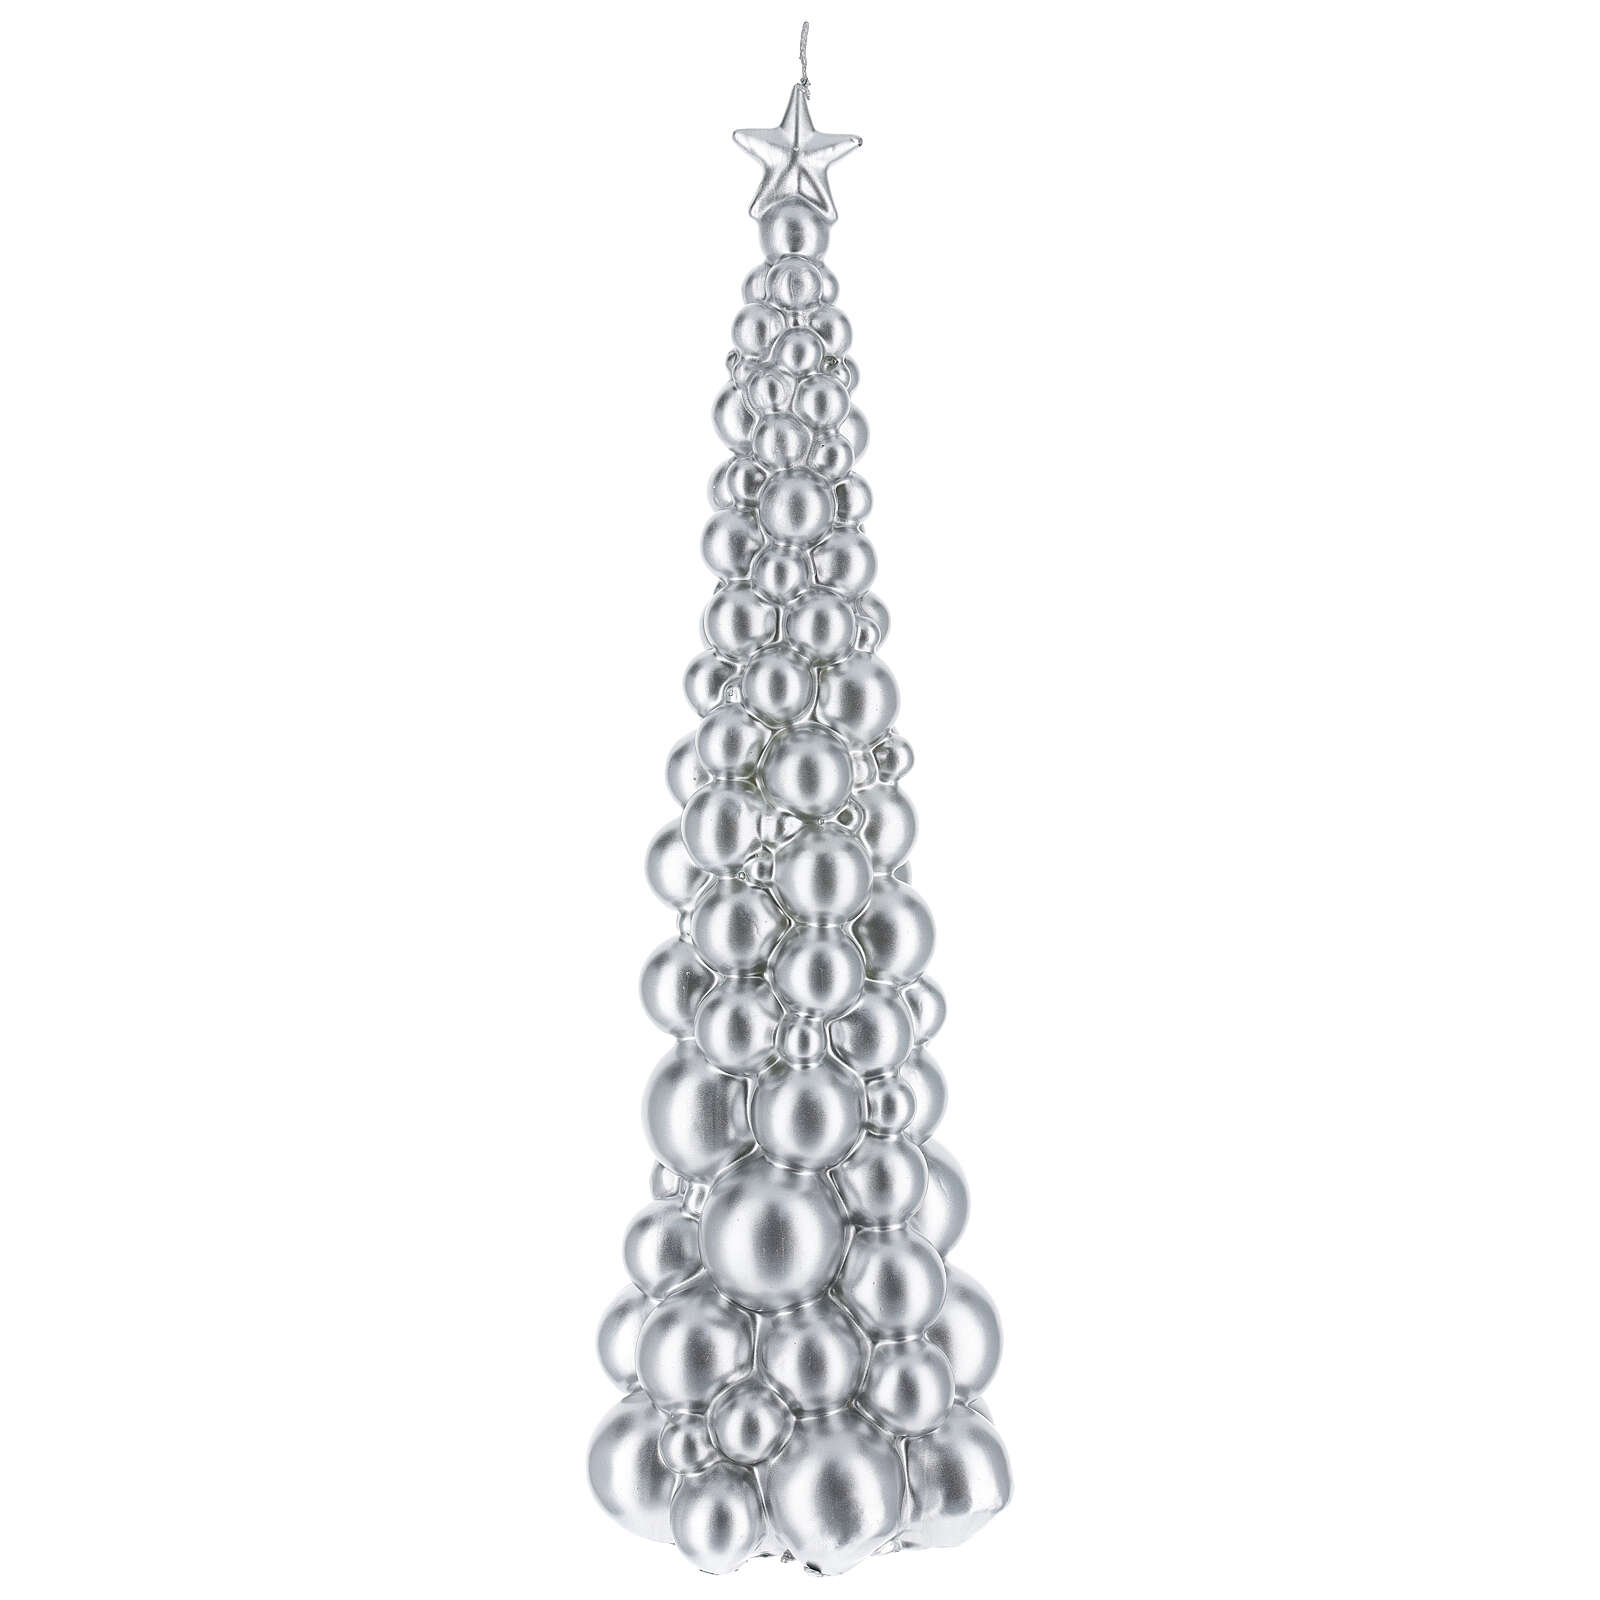 Christmas candle Moscow tree silver finish 18 1/2 in 3